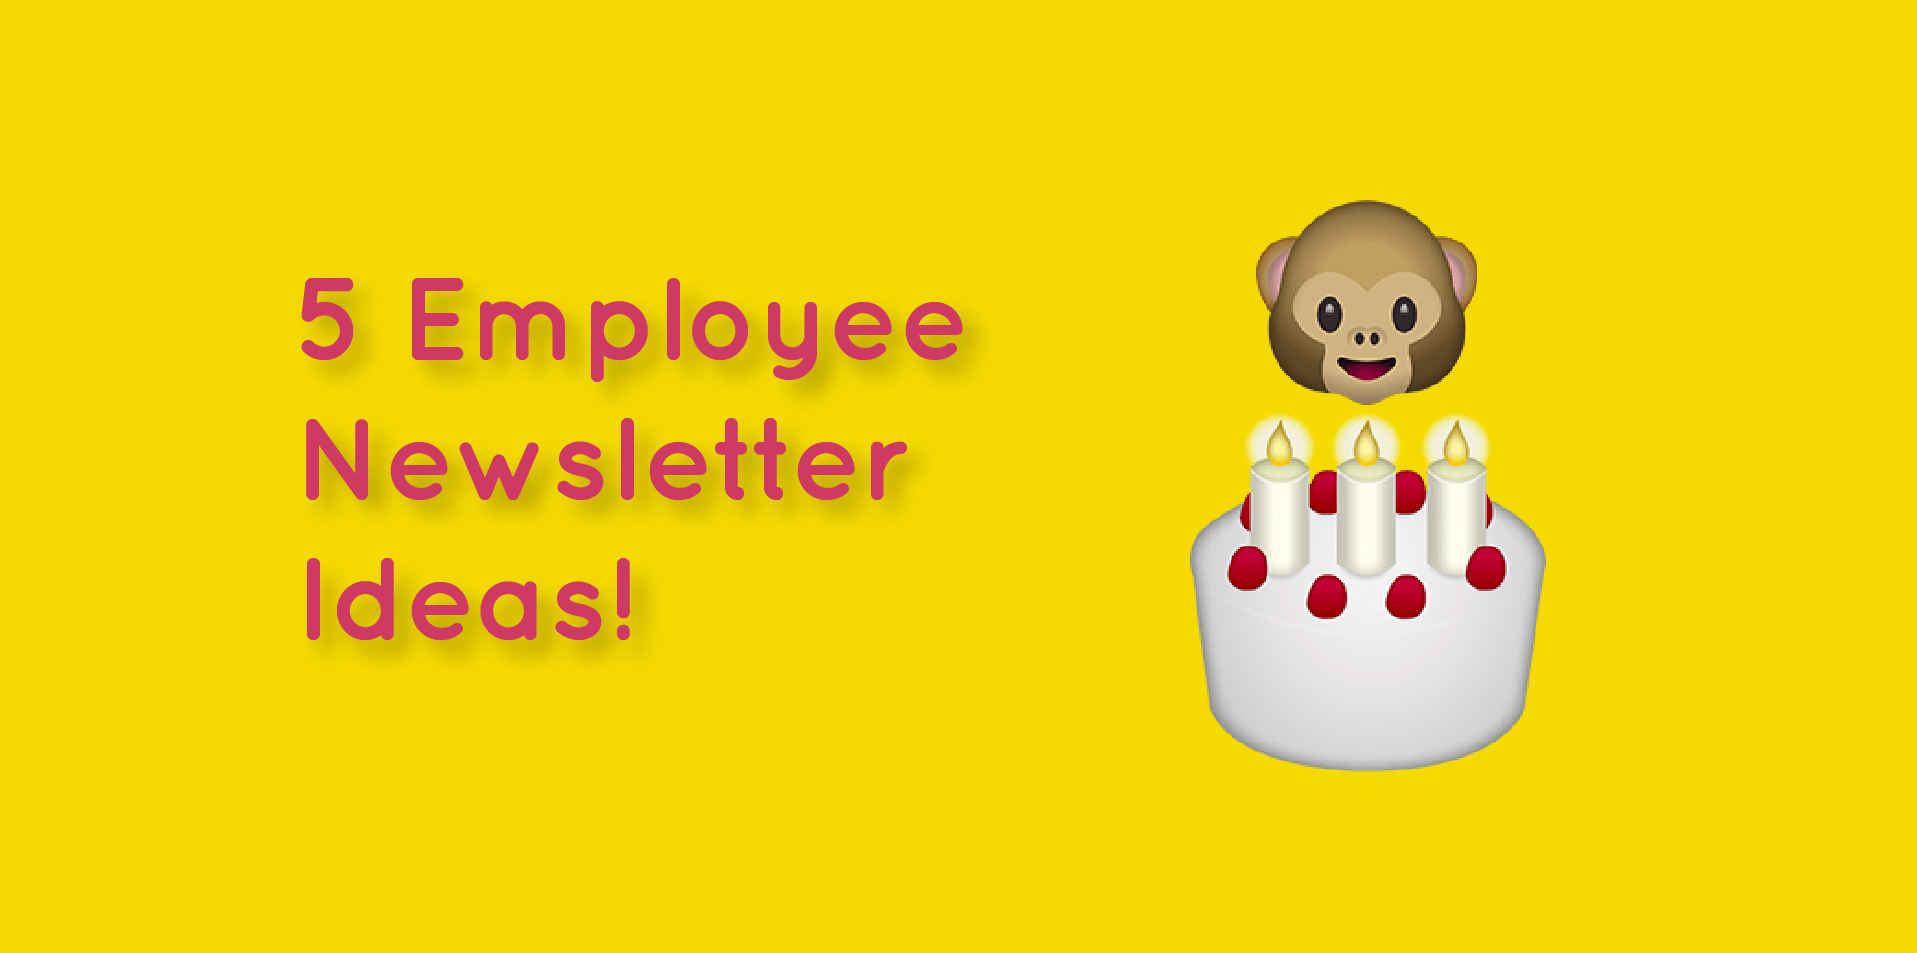 employee newsletter ideas 5 killer internal newsletter suggestions